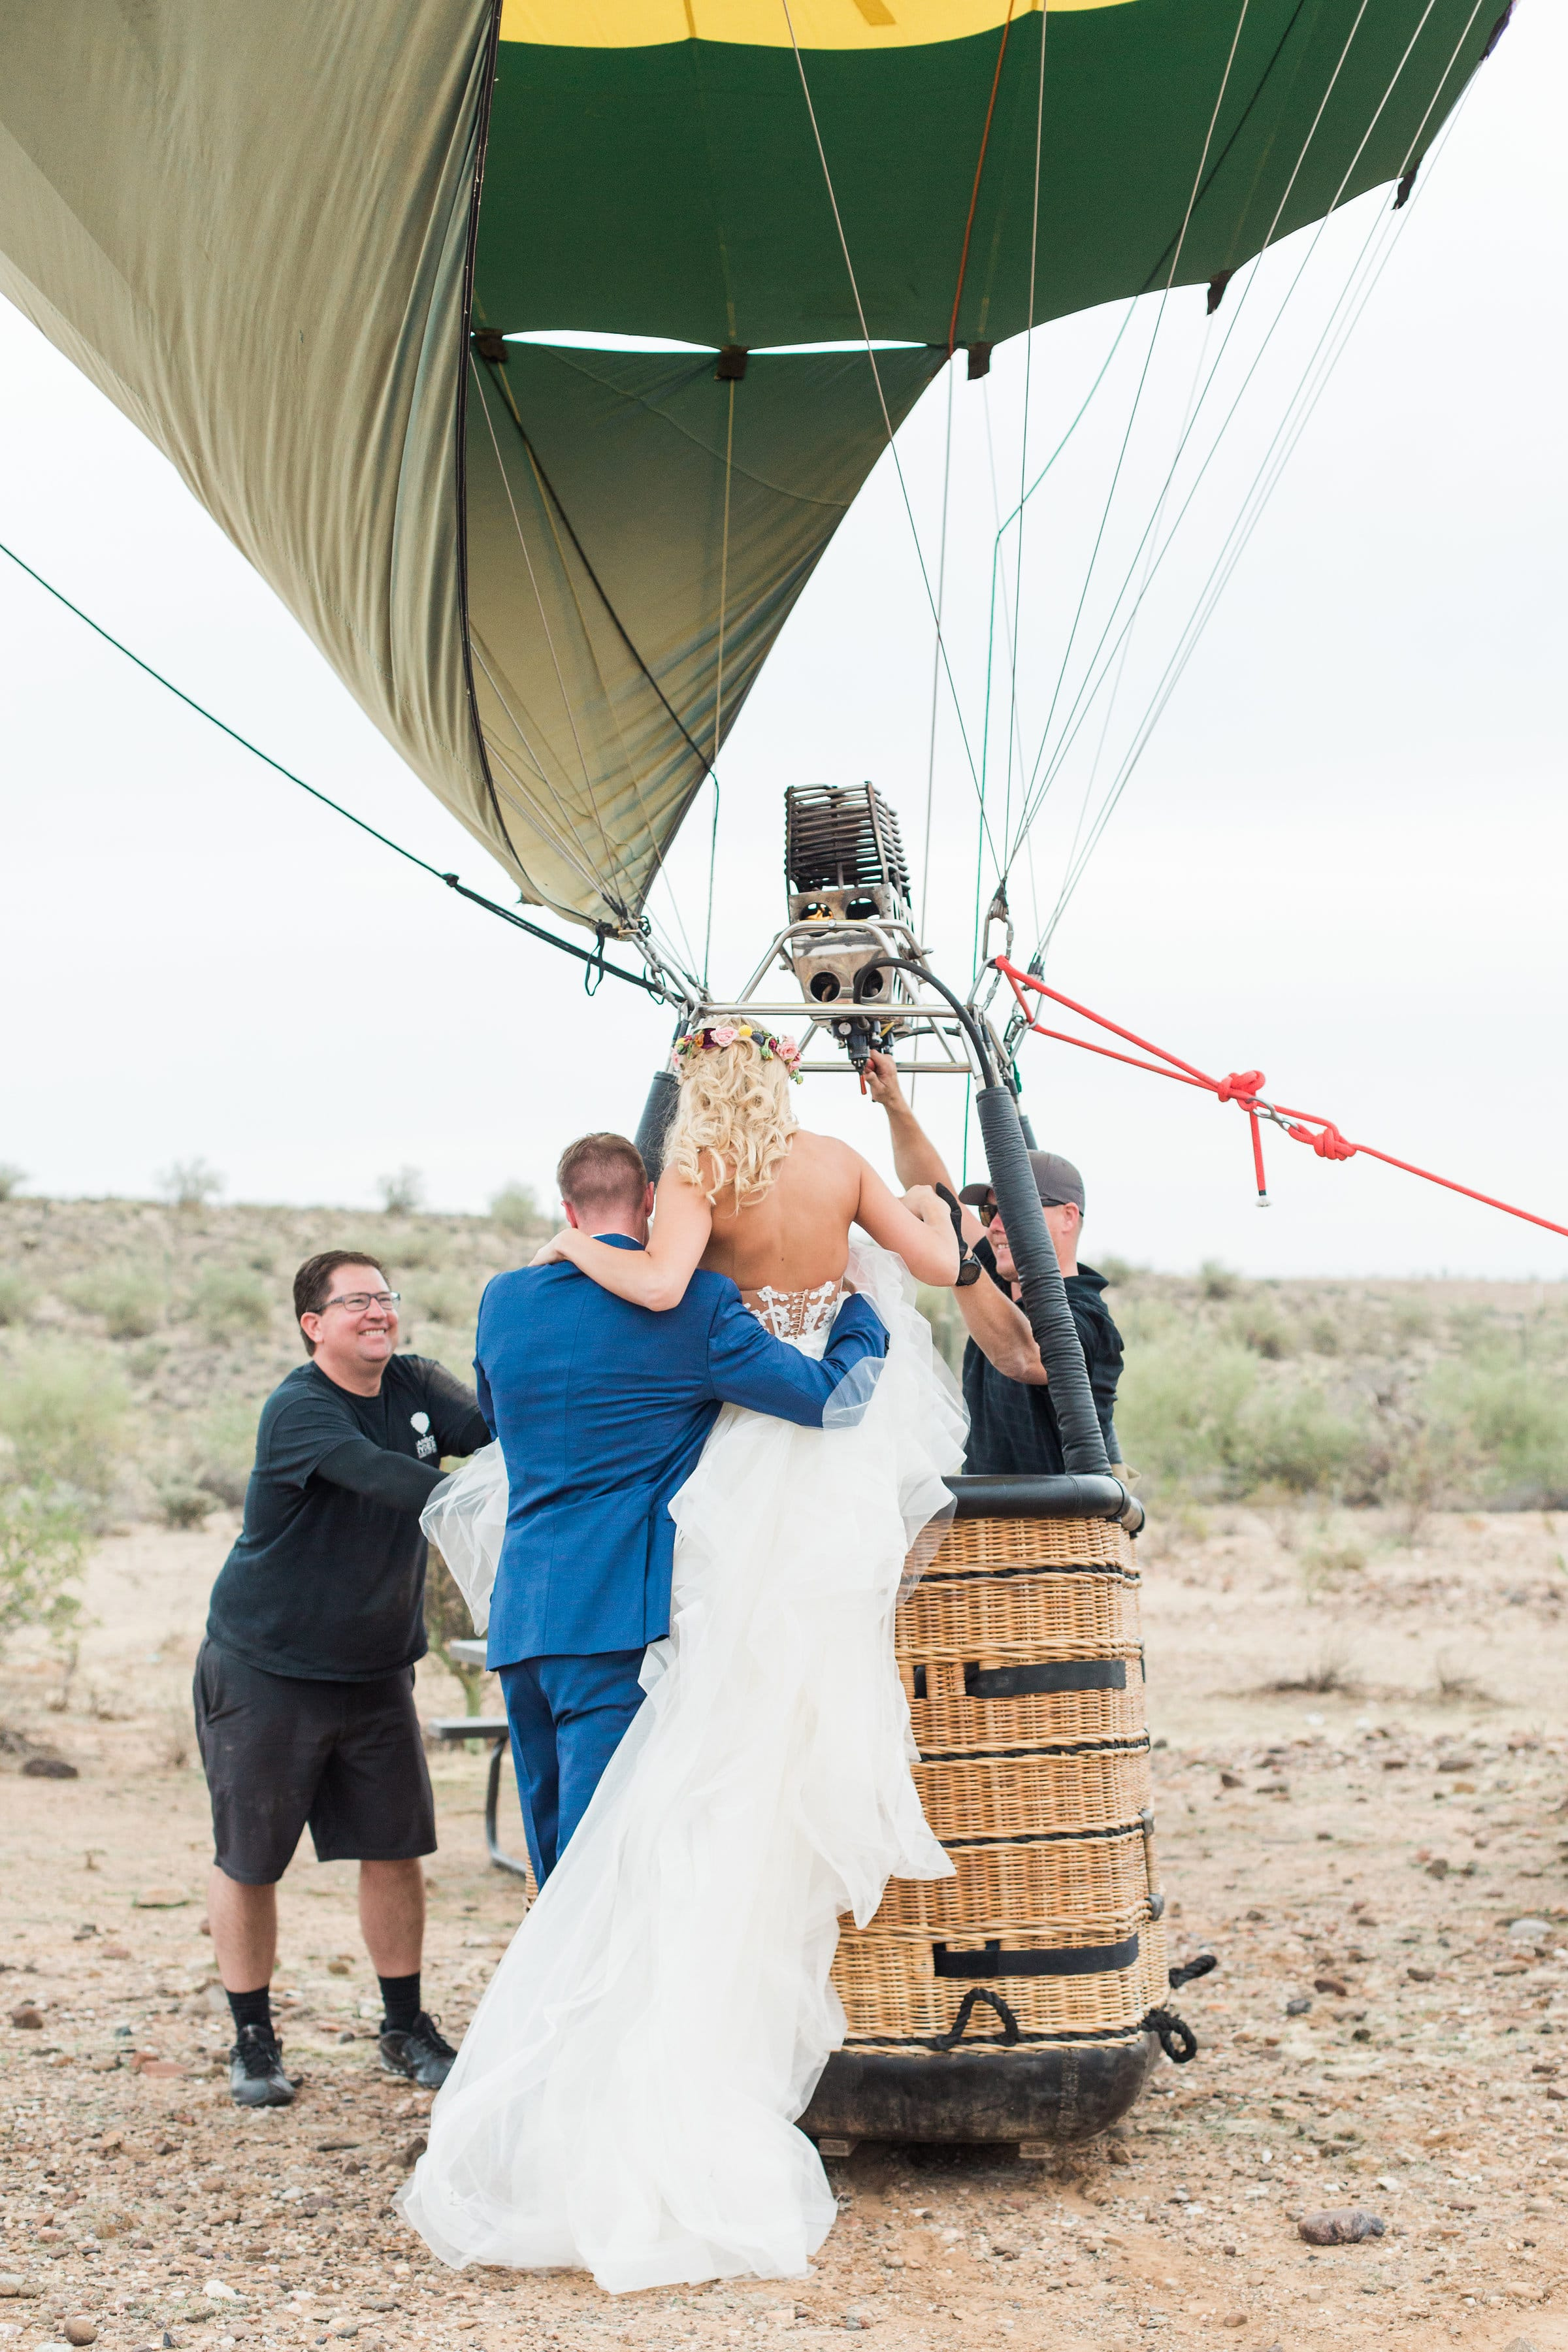 We're Over the Moon for this Hot Air Balloon Destination Wedding Idea  - Maggie Sottero Bride Keisha